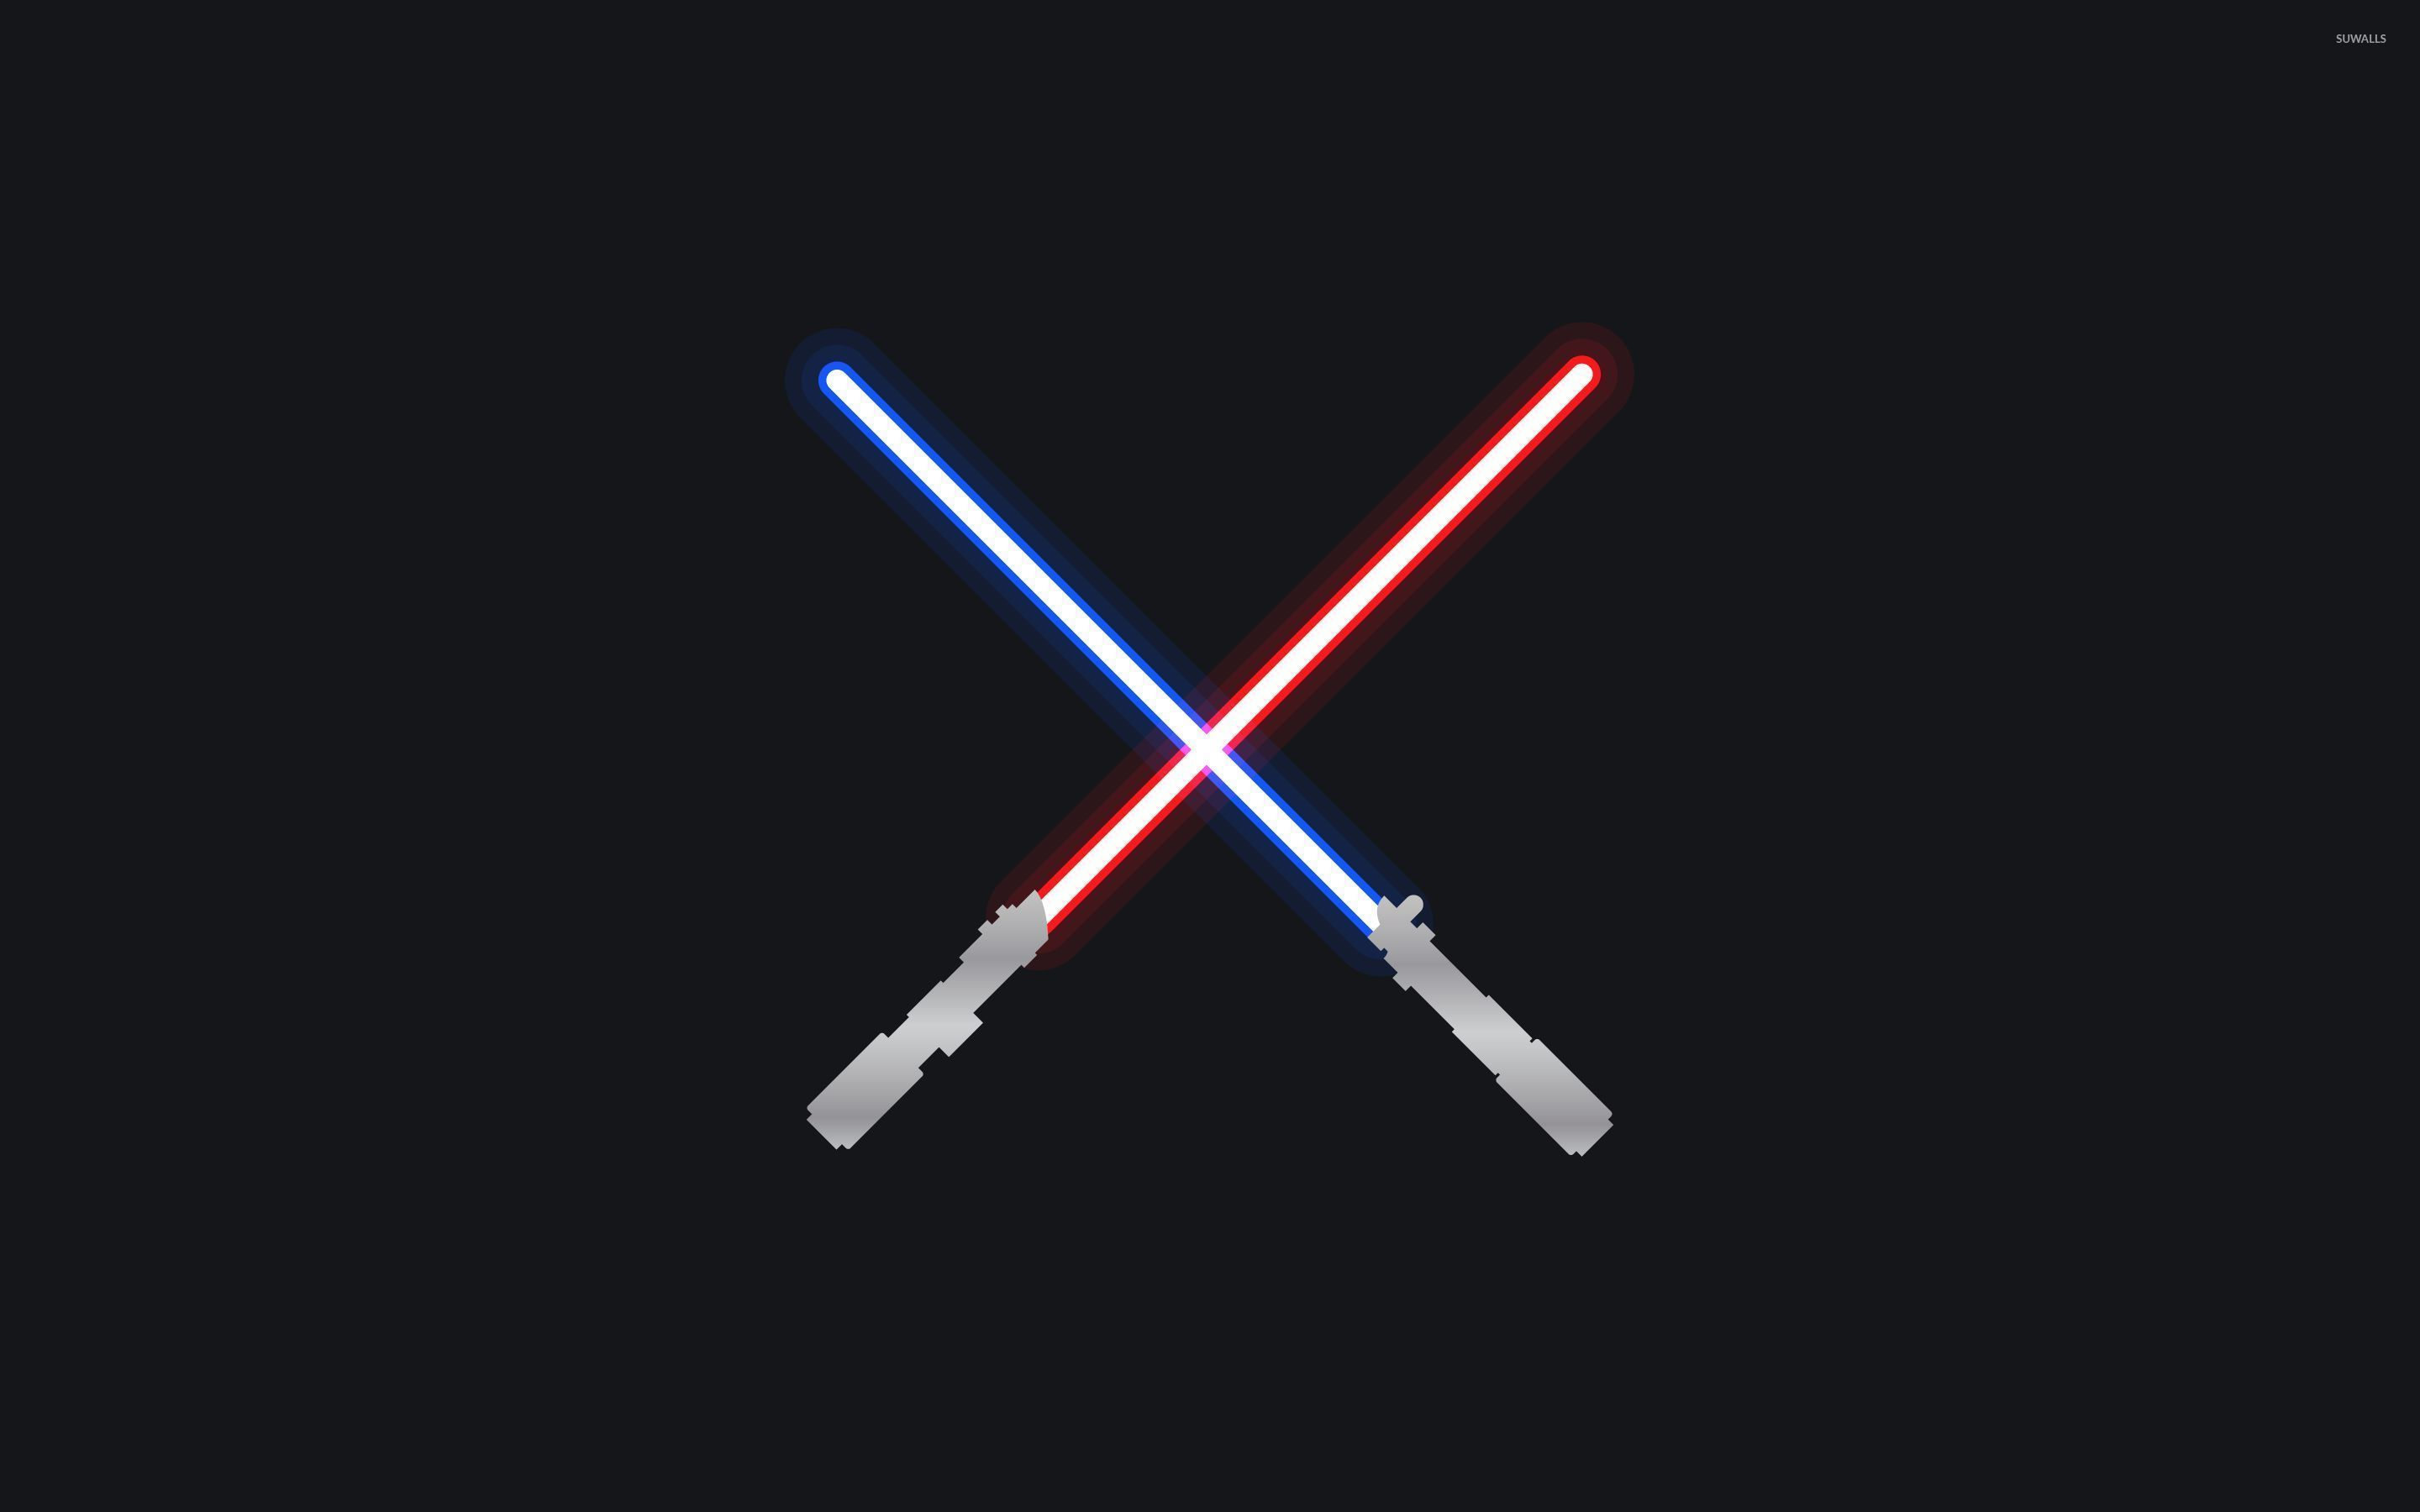 Lightsaber Wallpapers - Top Free